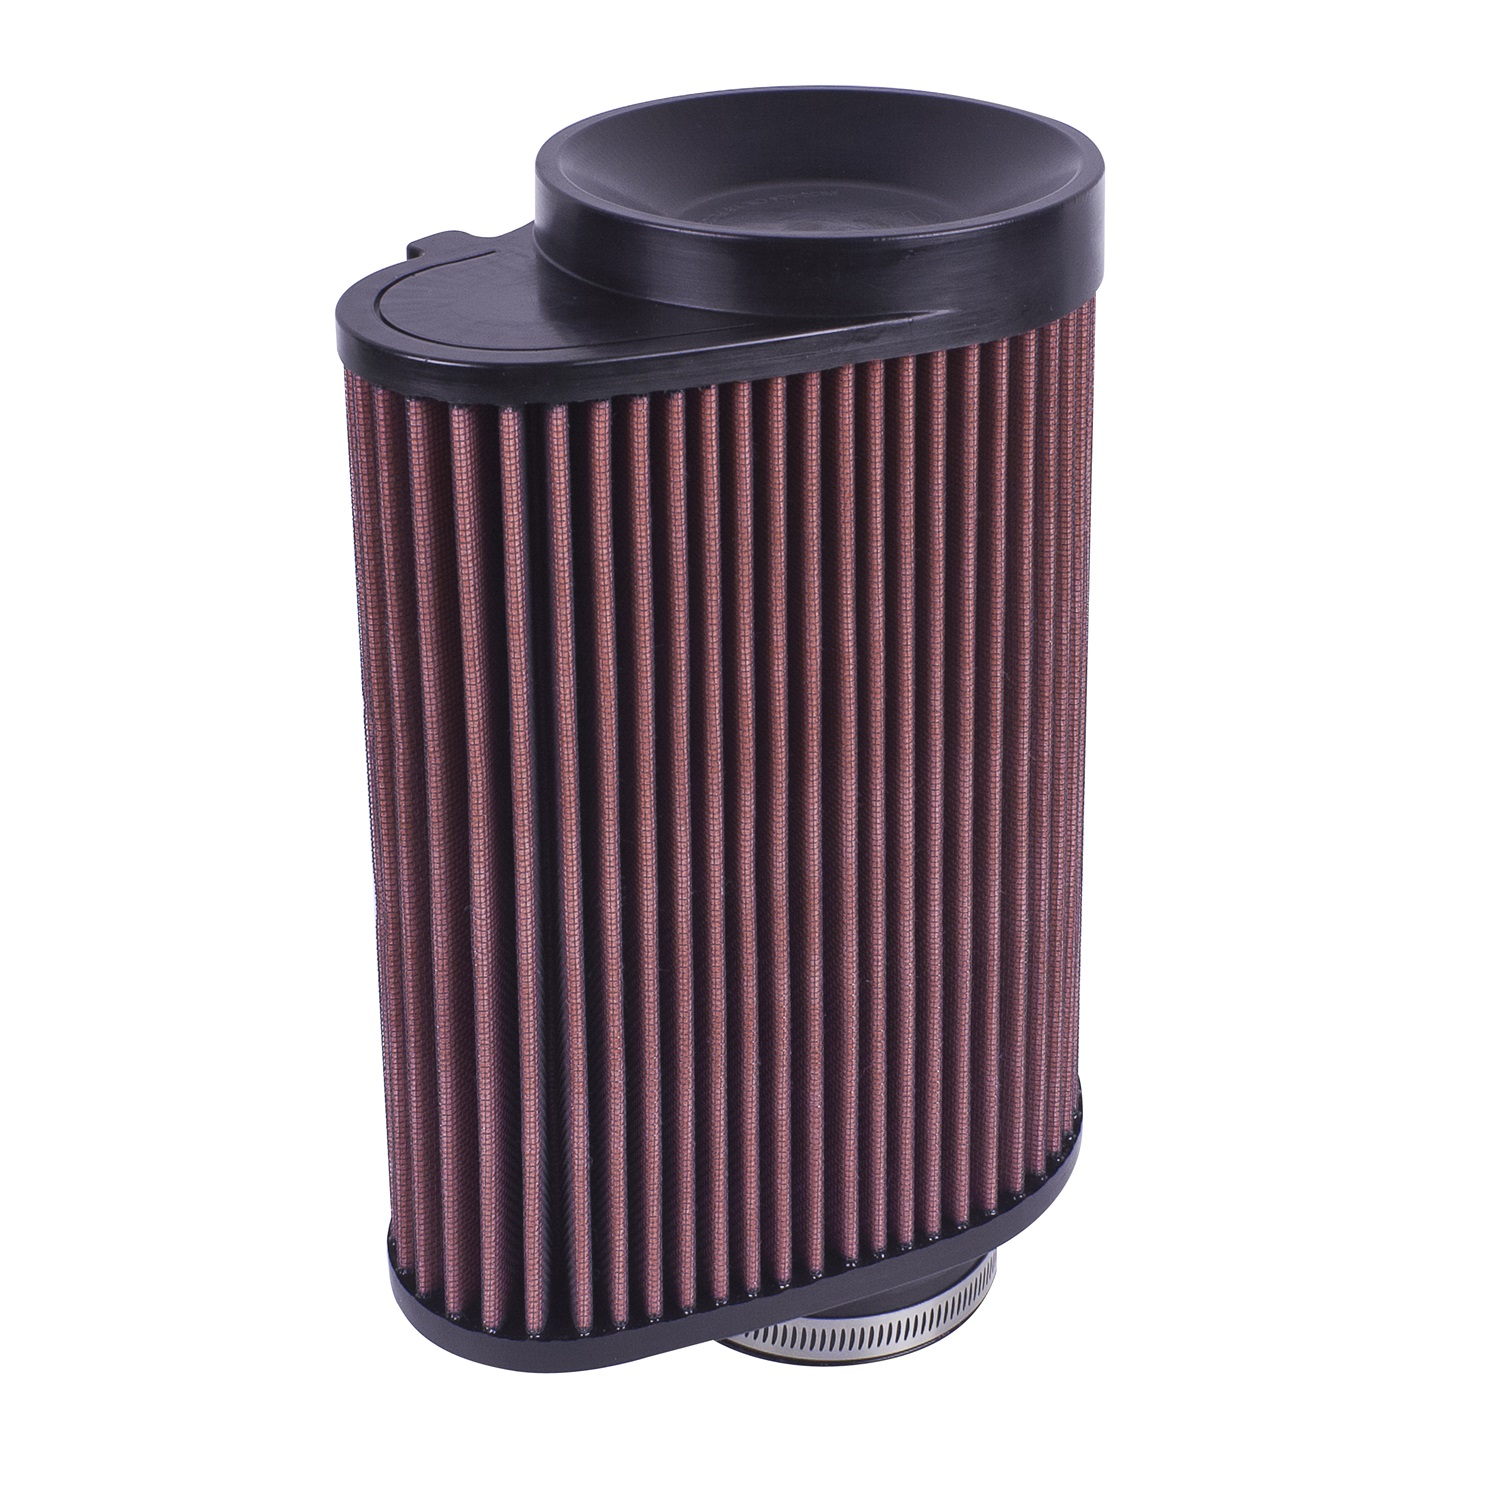 Airaid 800-504 Air Filter Fits 14 RZR XP 1000 EPS 800-504